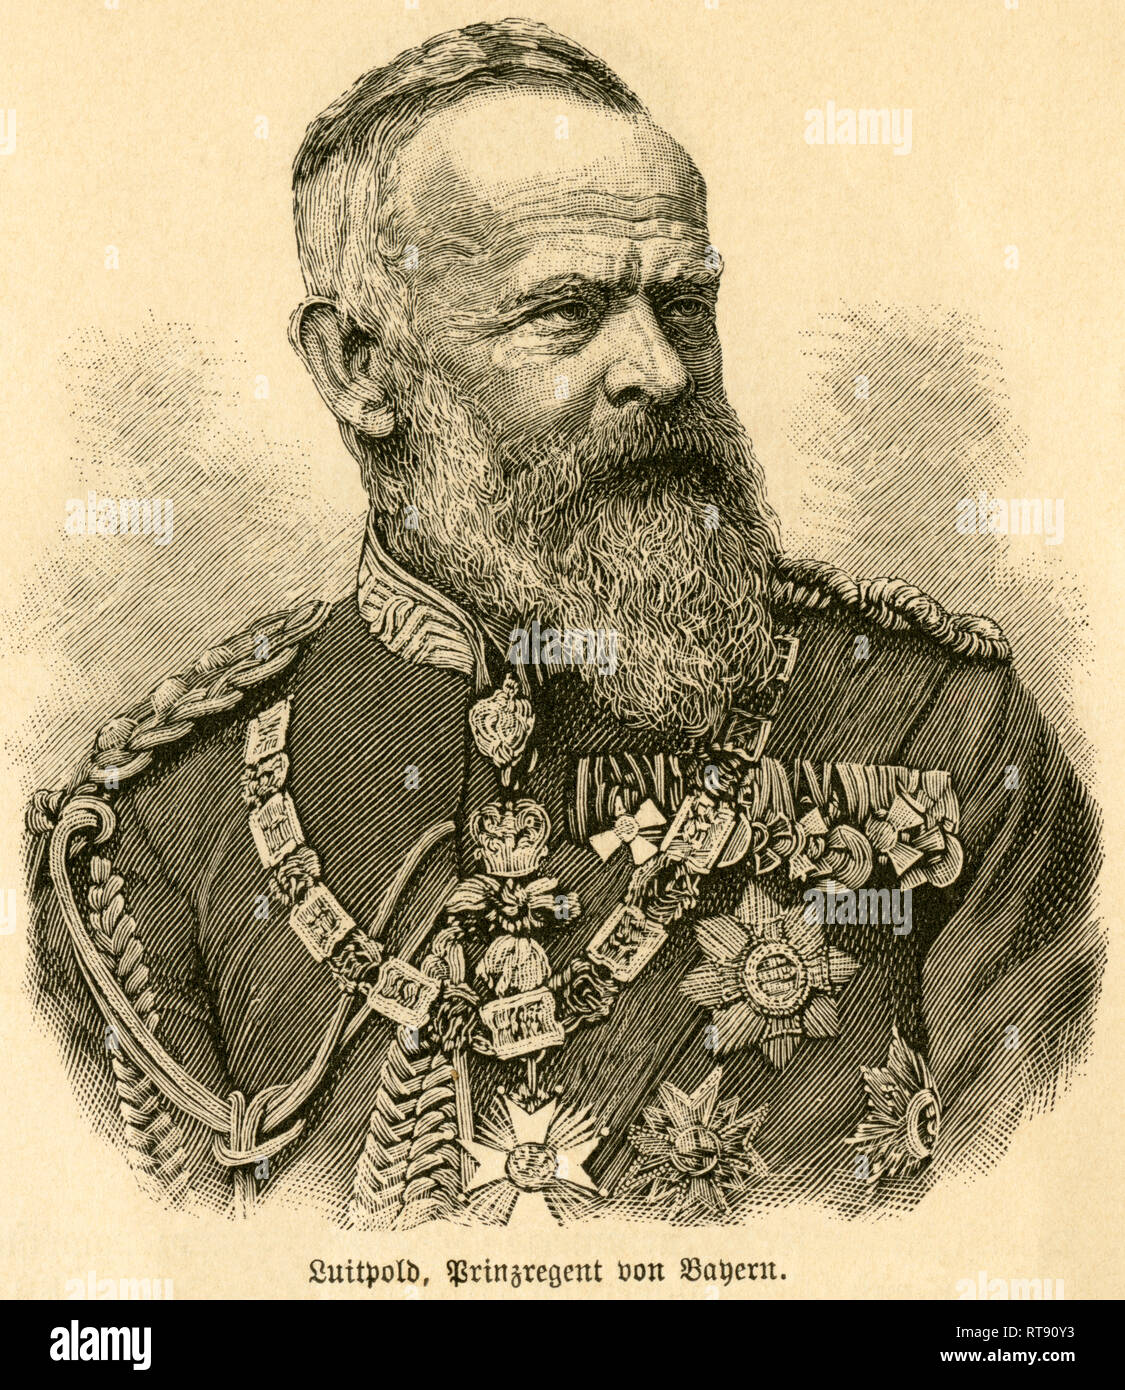 Luitpold, Prince Regent of Bavaria, portrait from: 'Deutschlands Heerführer' (German military leader), 1640-1894, portrayed by Sprößer, publishing house Ferdinand Hirt and son, Leipzig, 1895., Additional-Rights-Clearance-Info-Not-Available - Stock Image